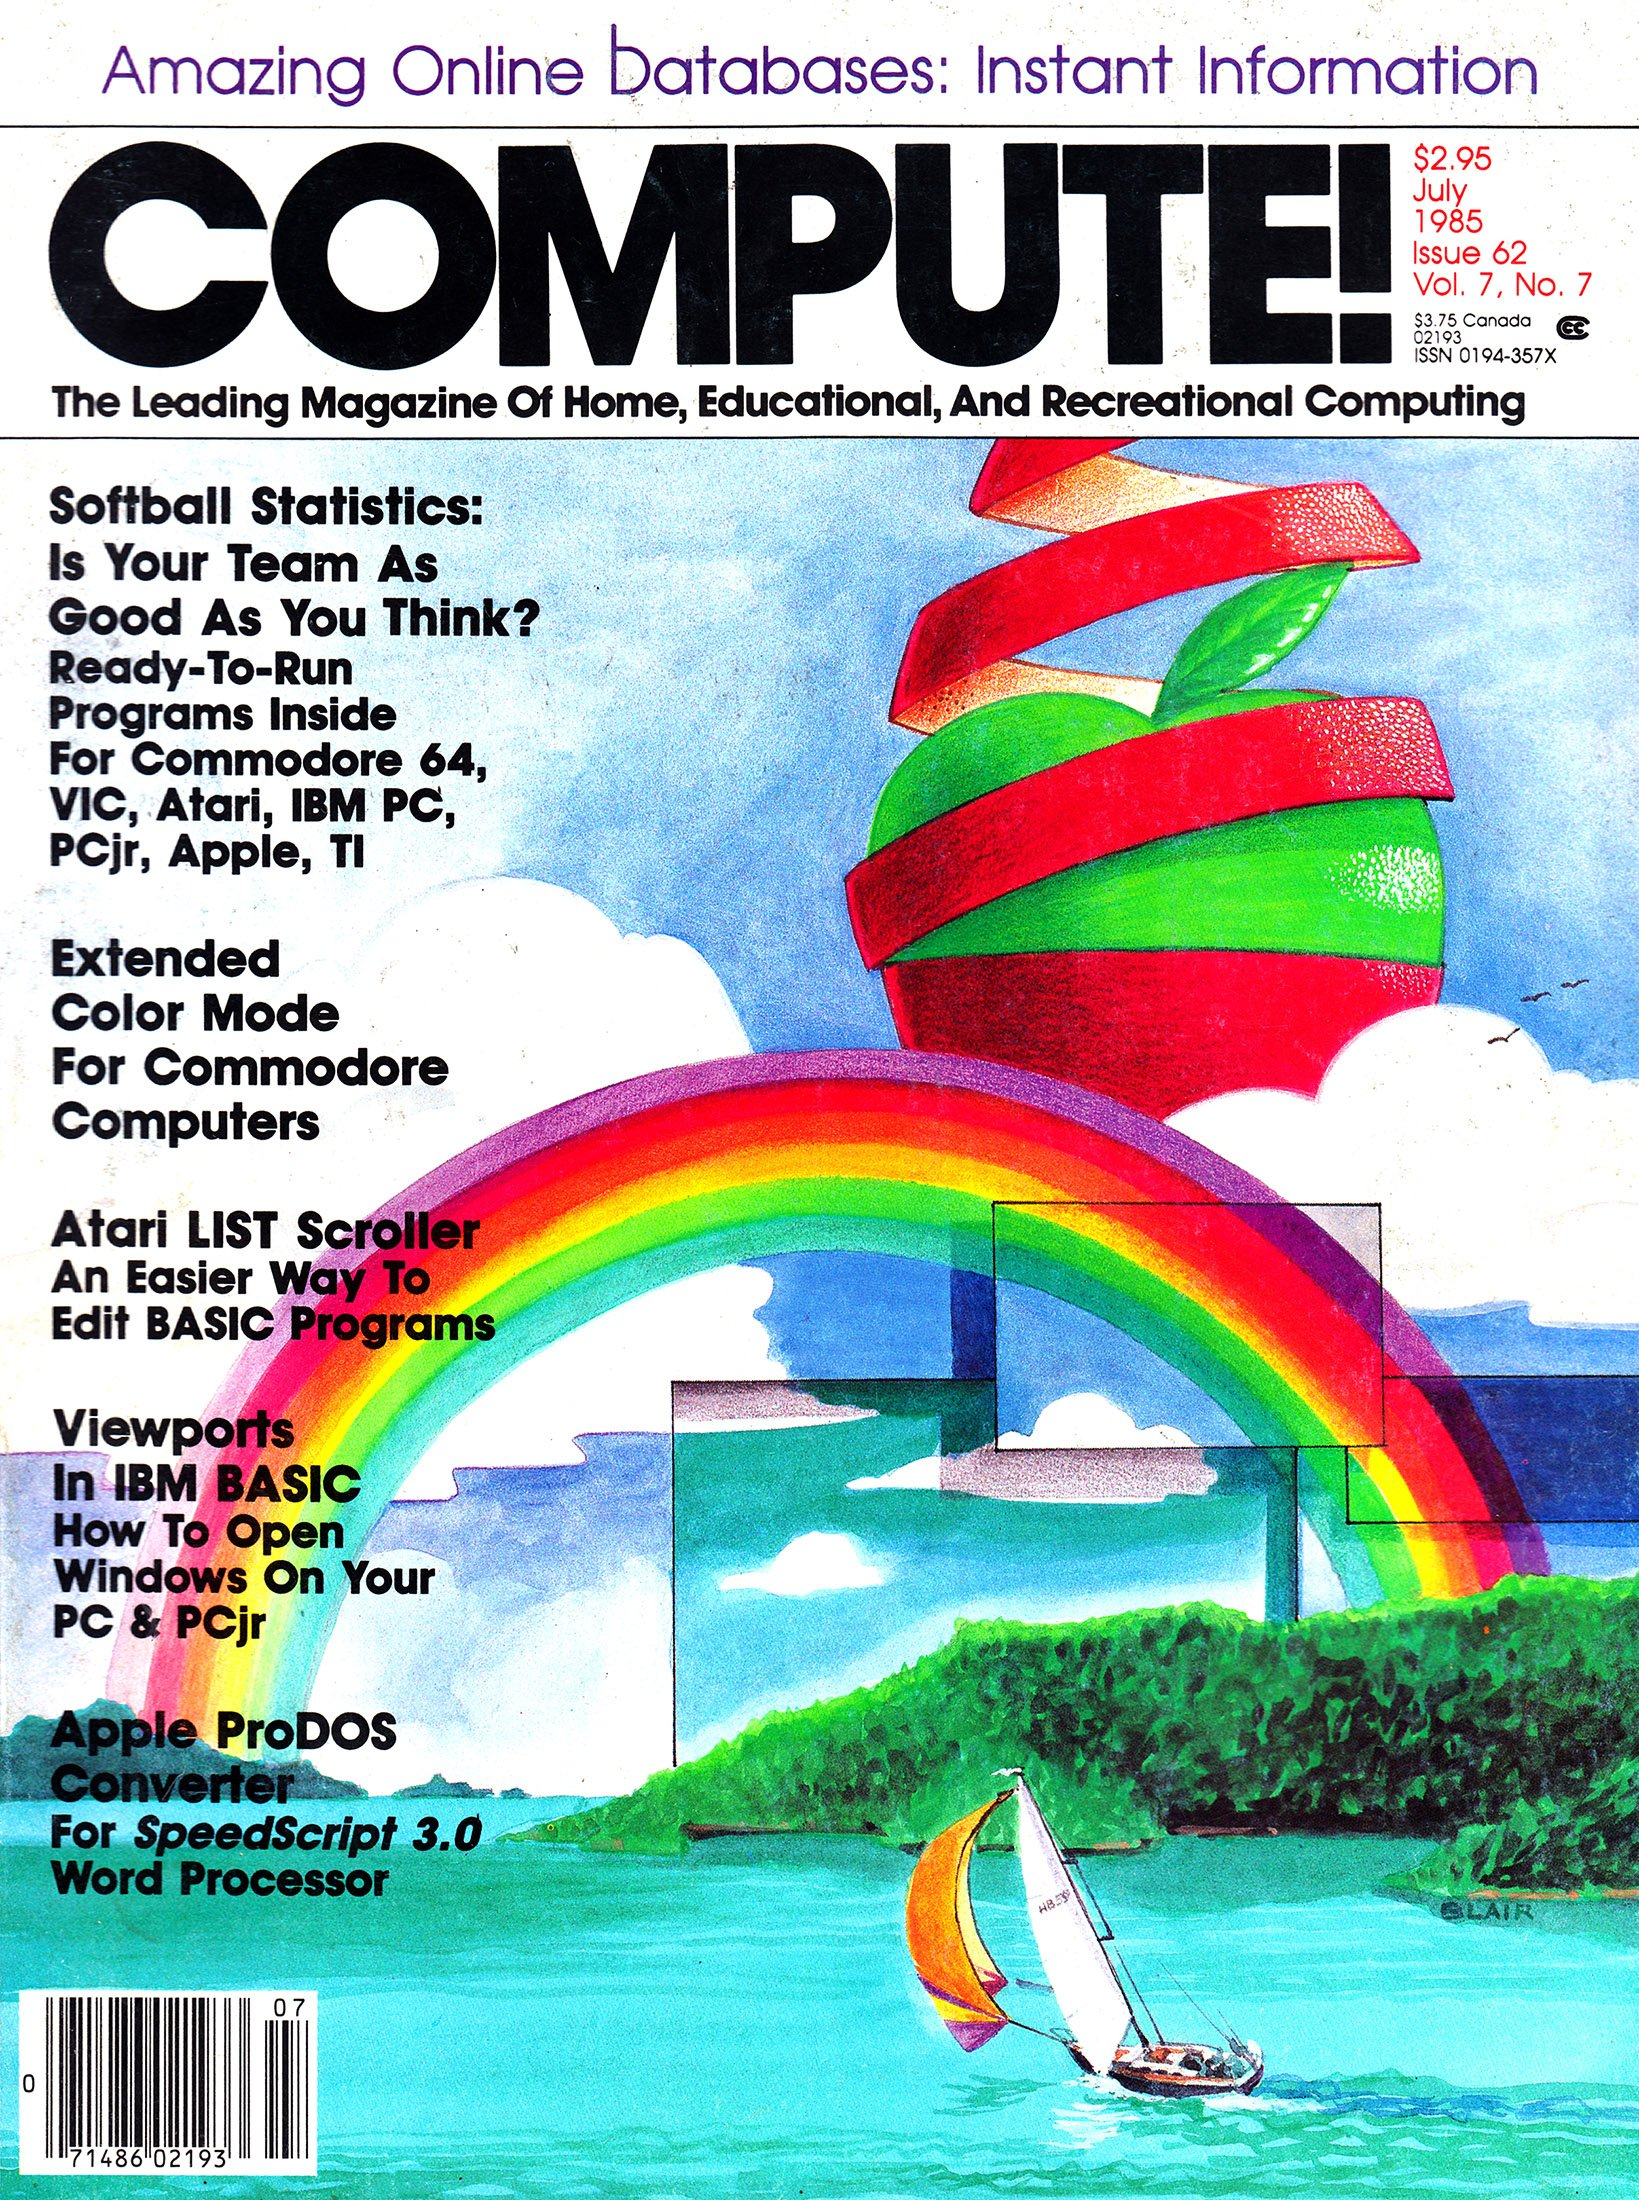 Compute! Issue 062 Vol. 7 No.7 (July 1985)